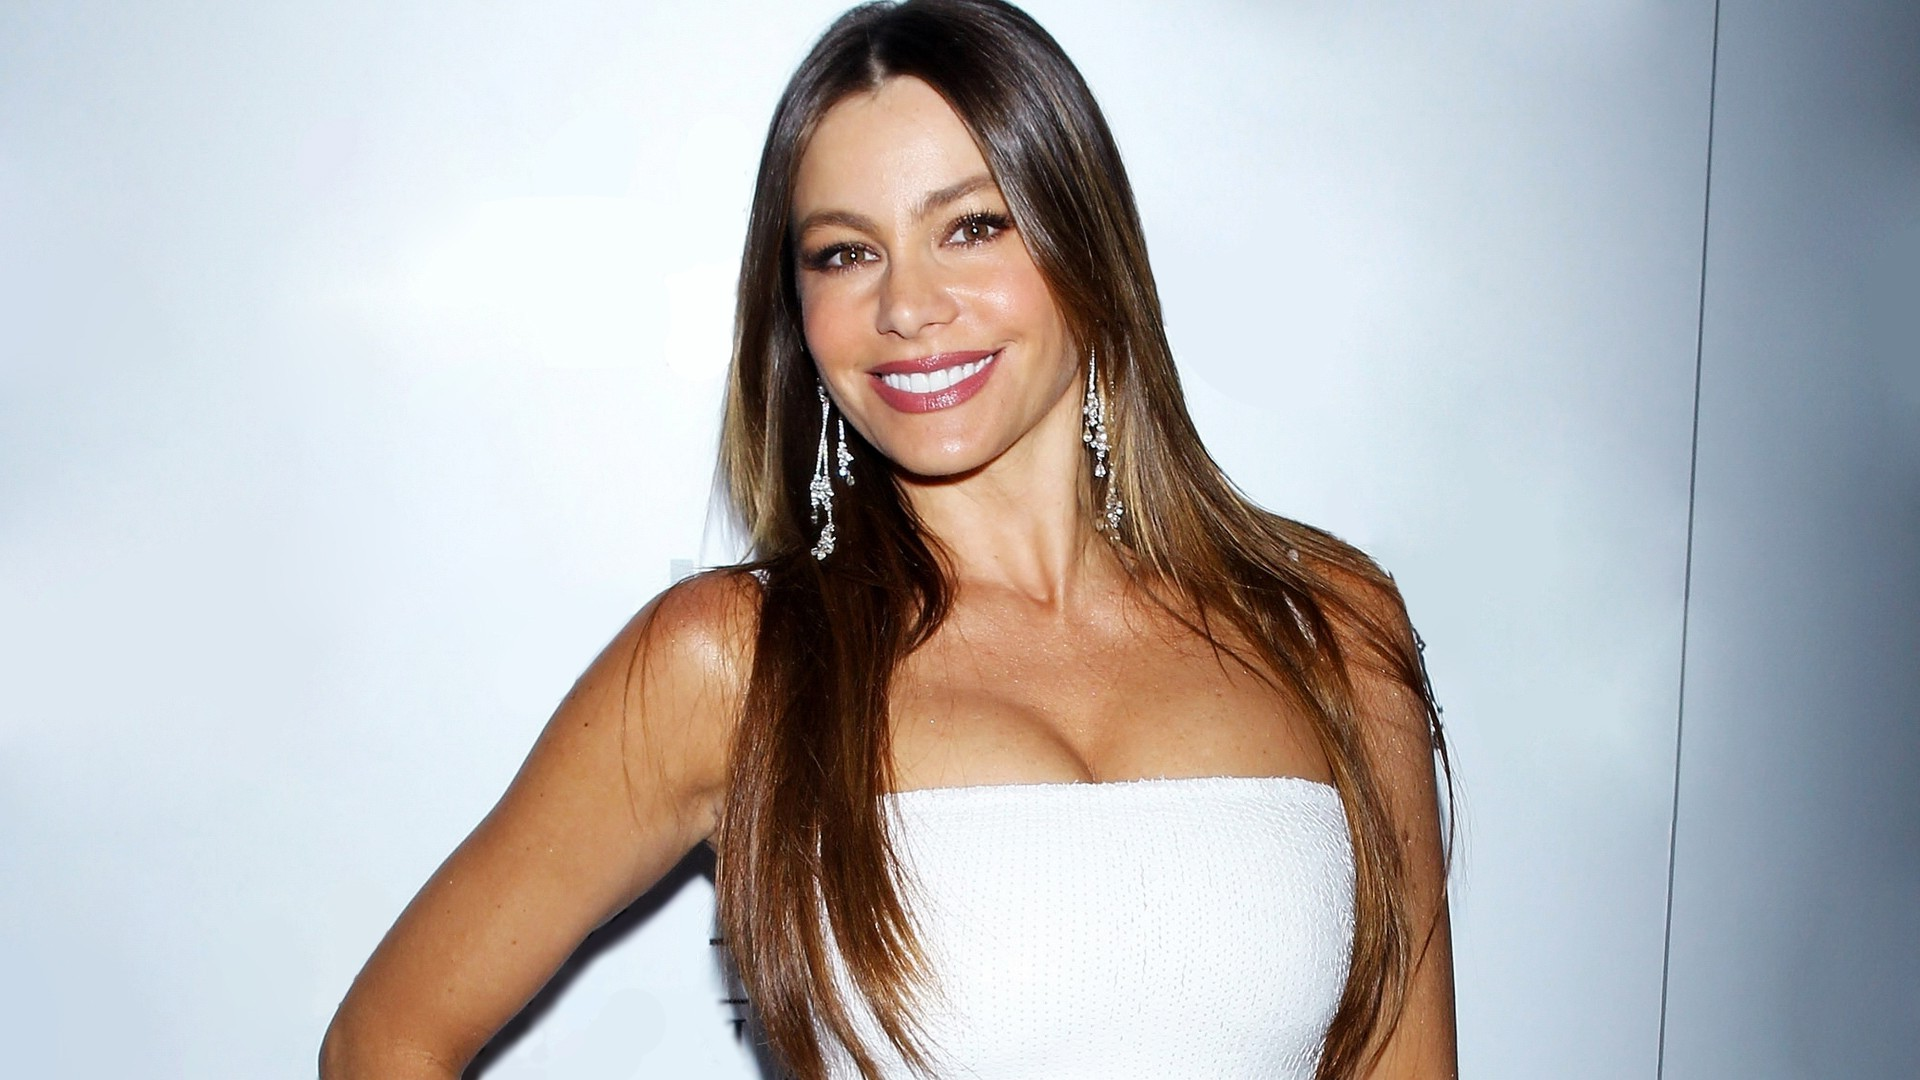 HD Wallpapers Sofia Vergara high quality and definition 1920x1080